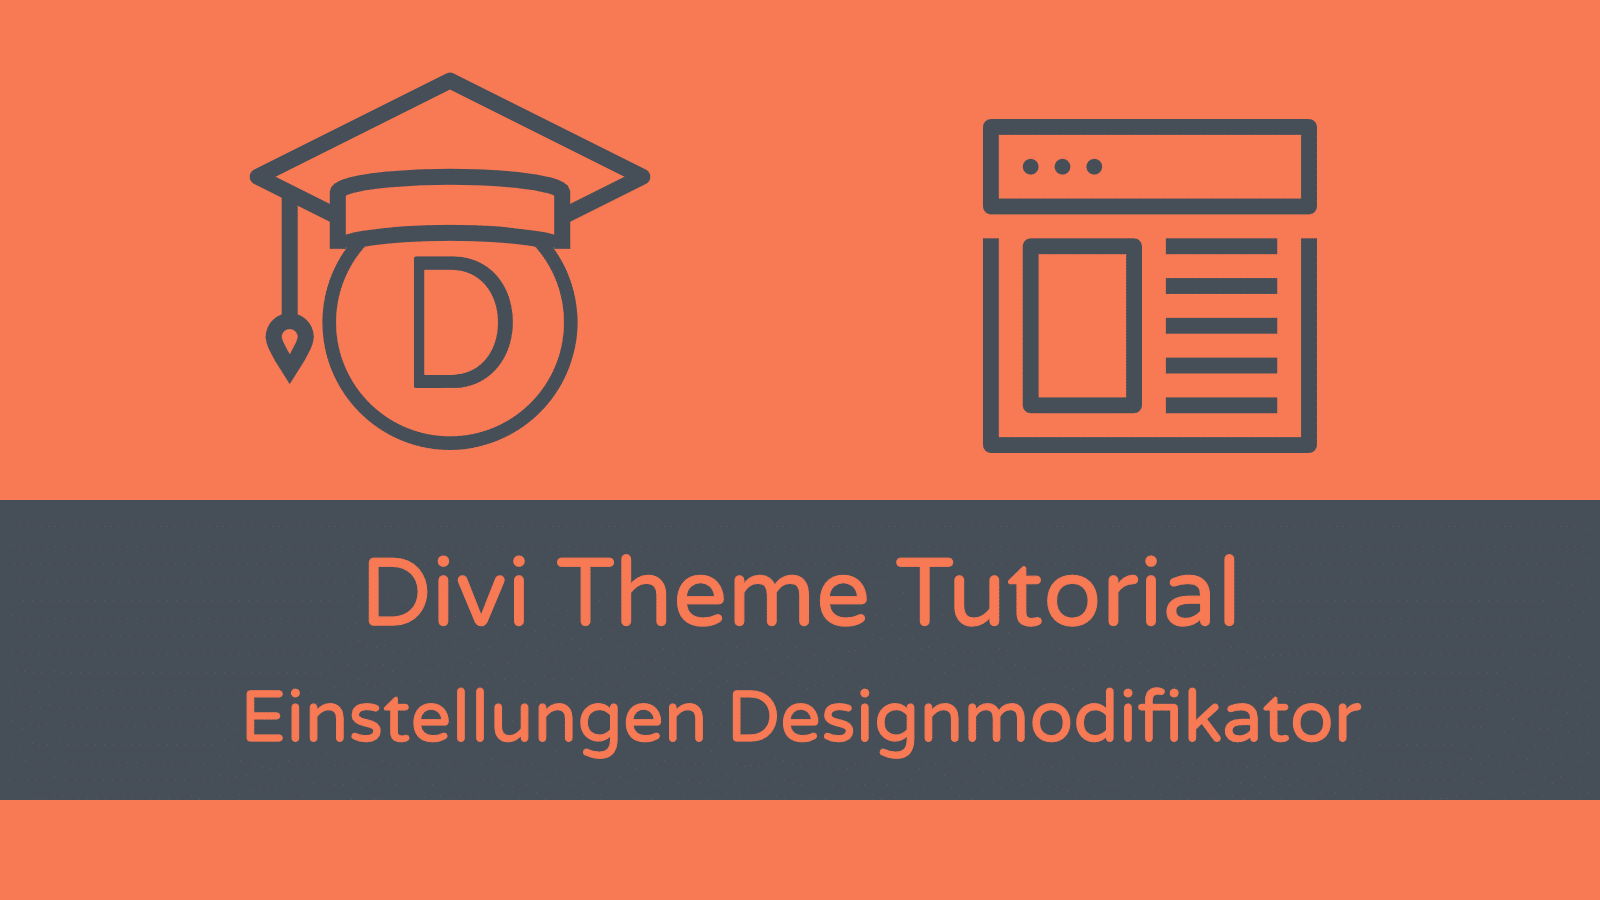 Divi Theme Tutorial: Designmodifikator (Customizer)